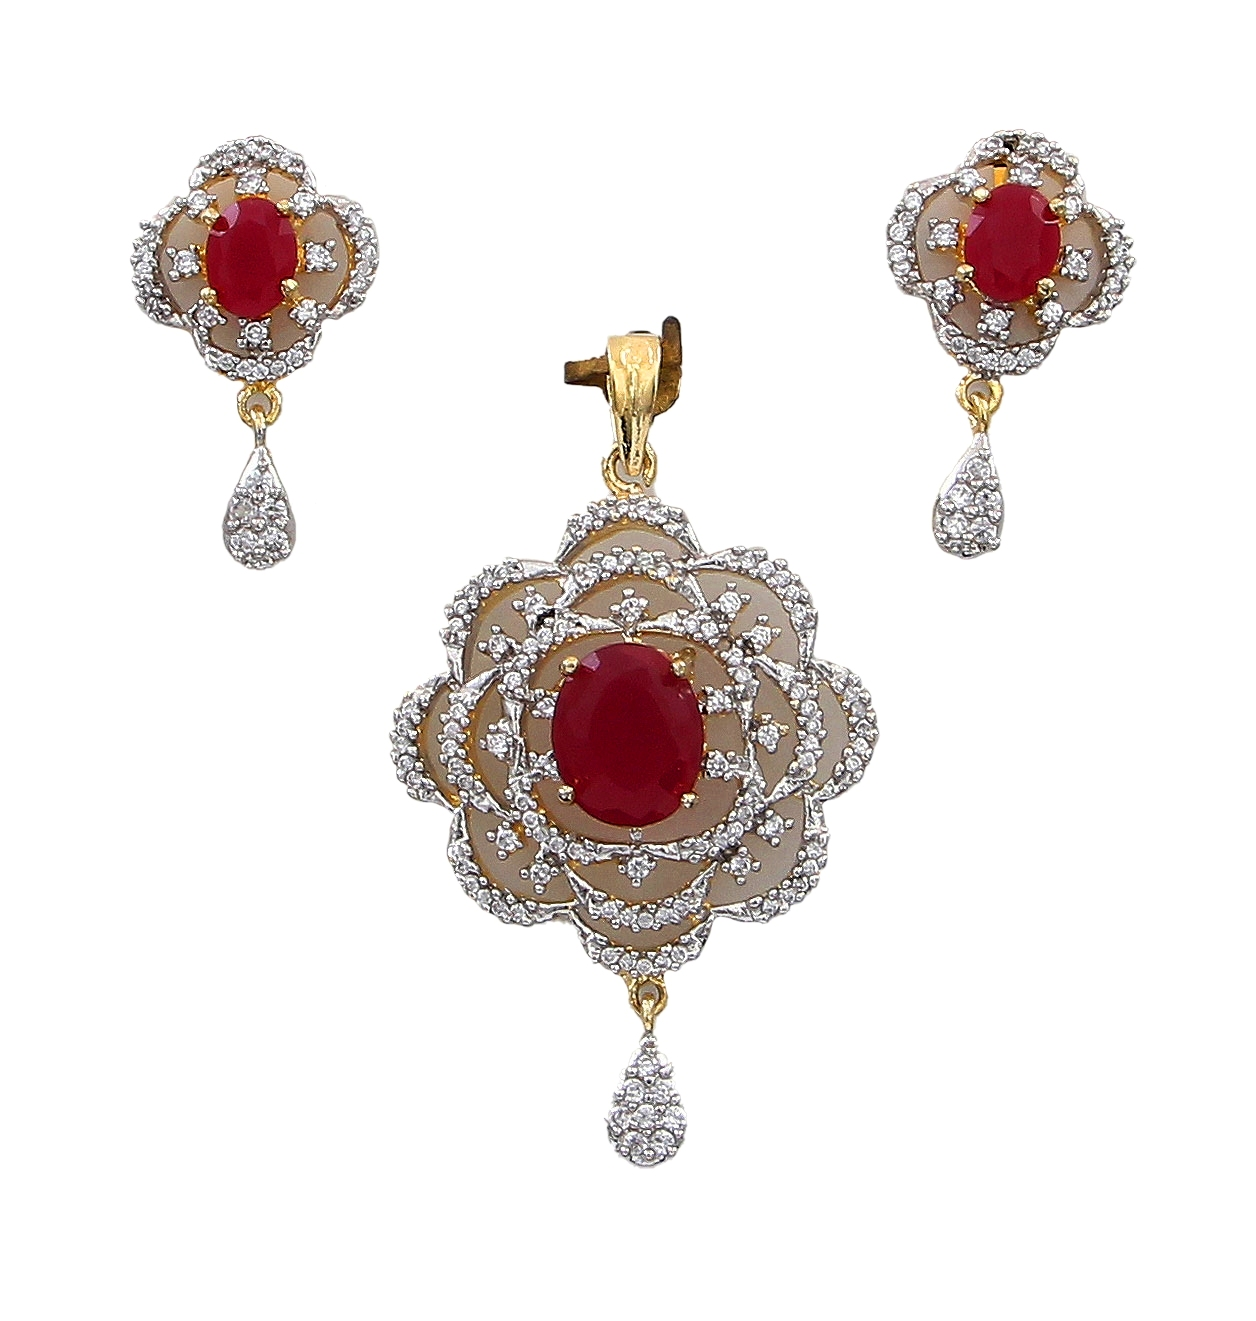 55Carat | Pendant with Drop Earring For Women Girls Ladies Red Onyx Latest Design locket 18K Gold Plated Multipurpose Accessories for Gift